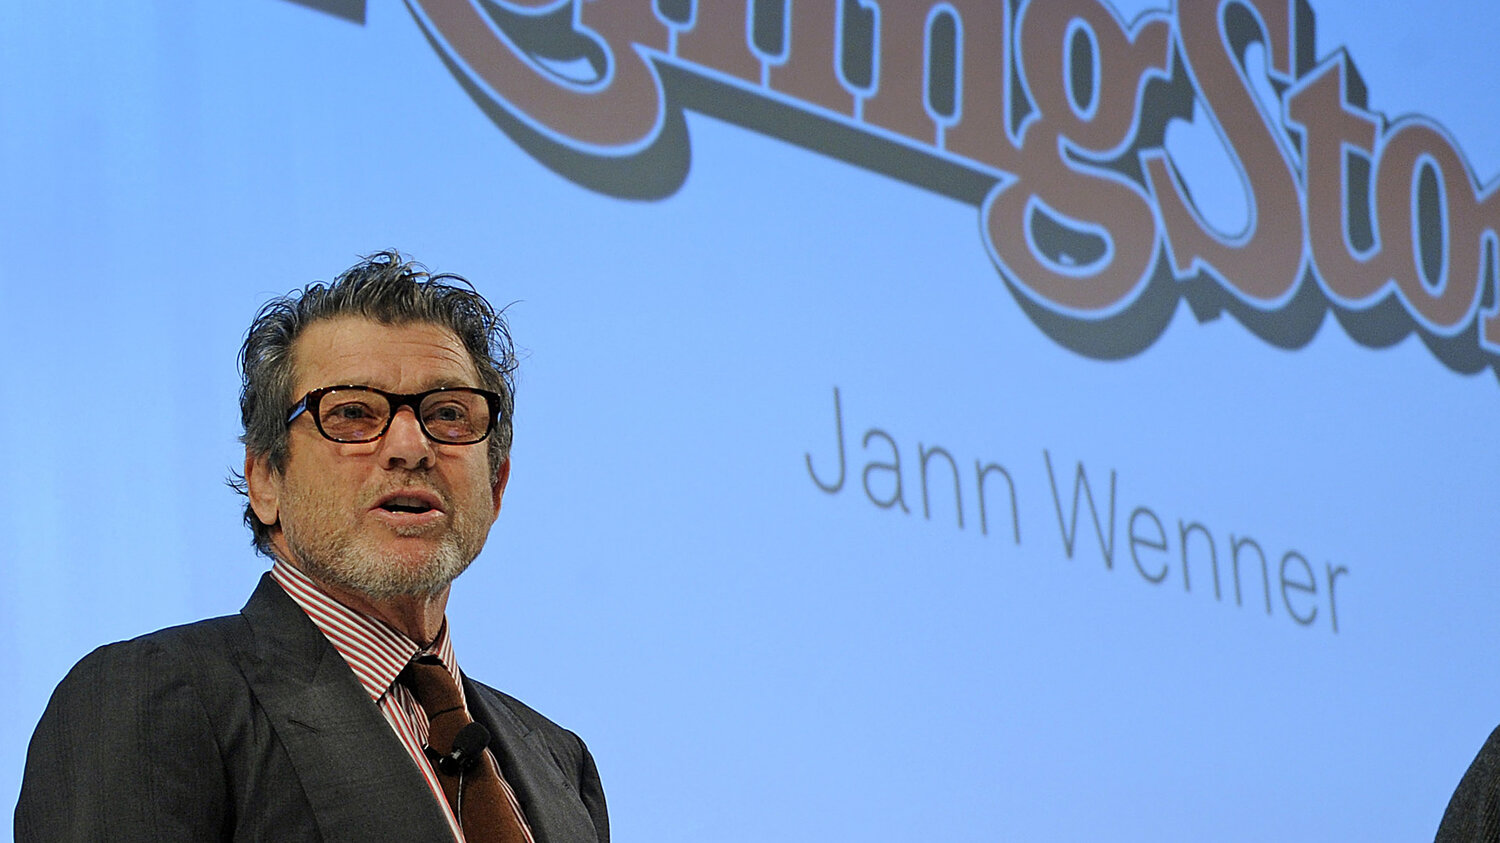 Rolling Stone Is for Sale, Jann Wenner Says